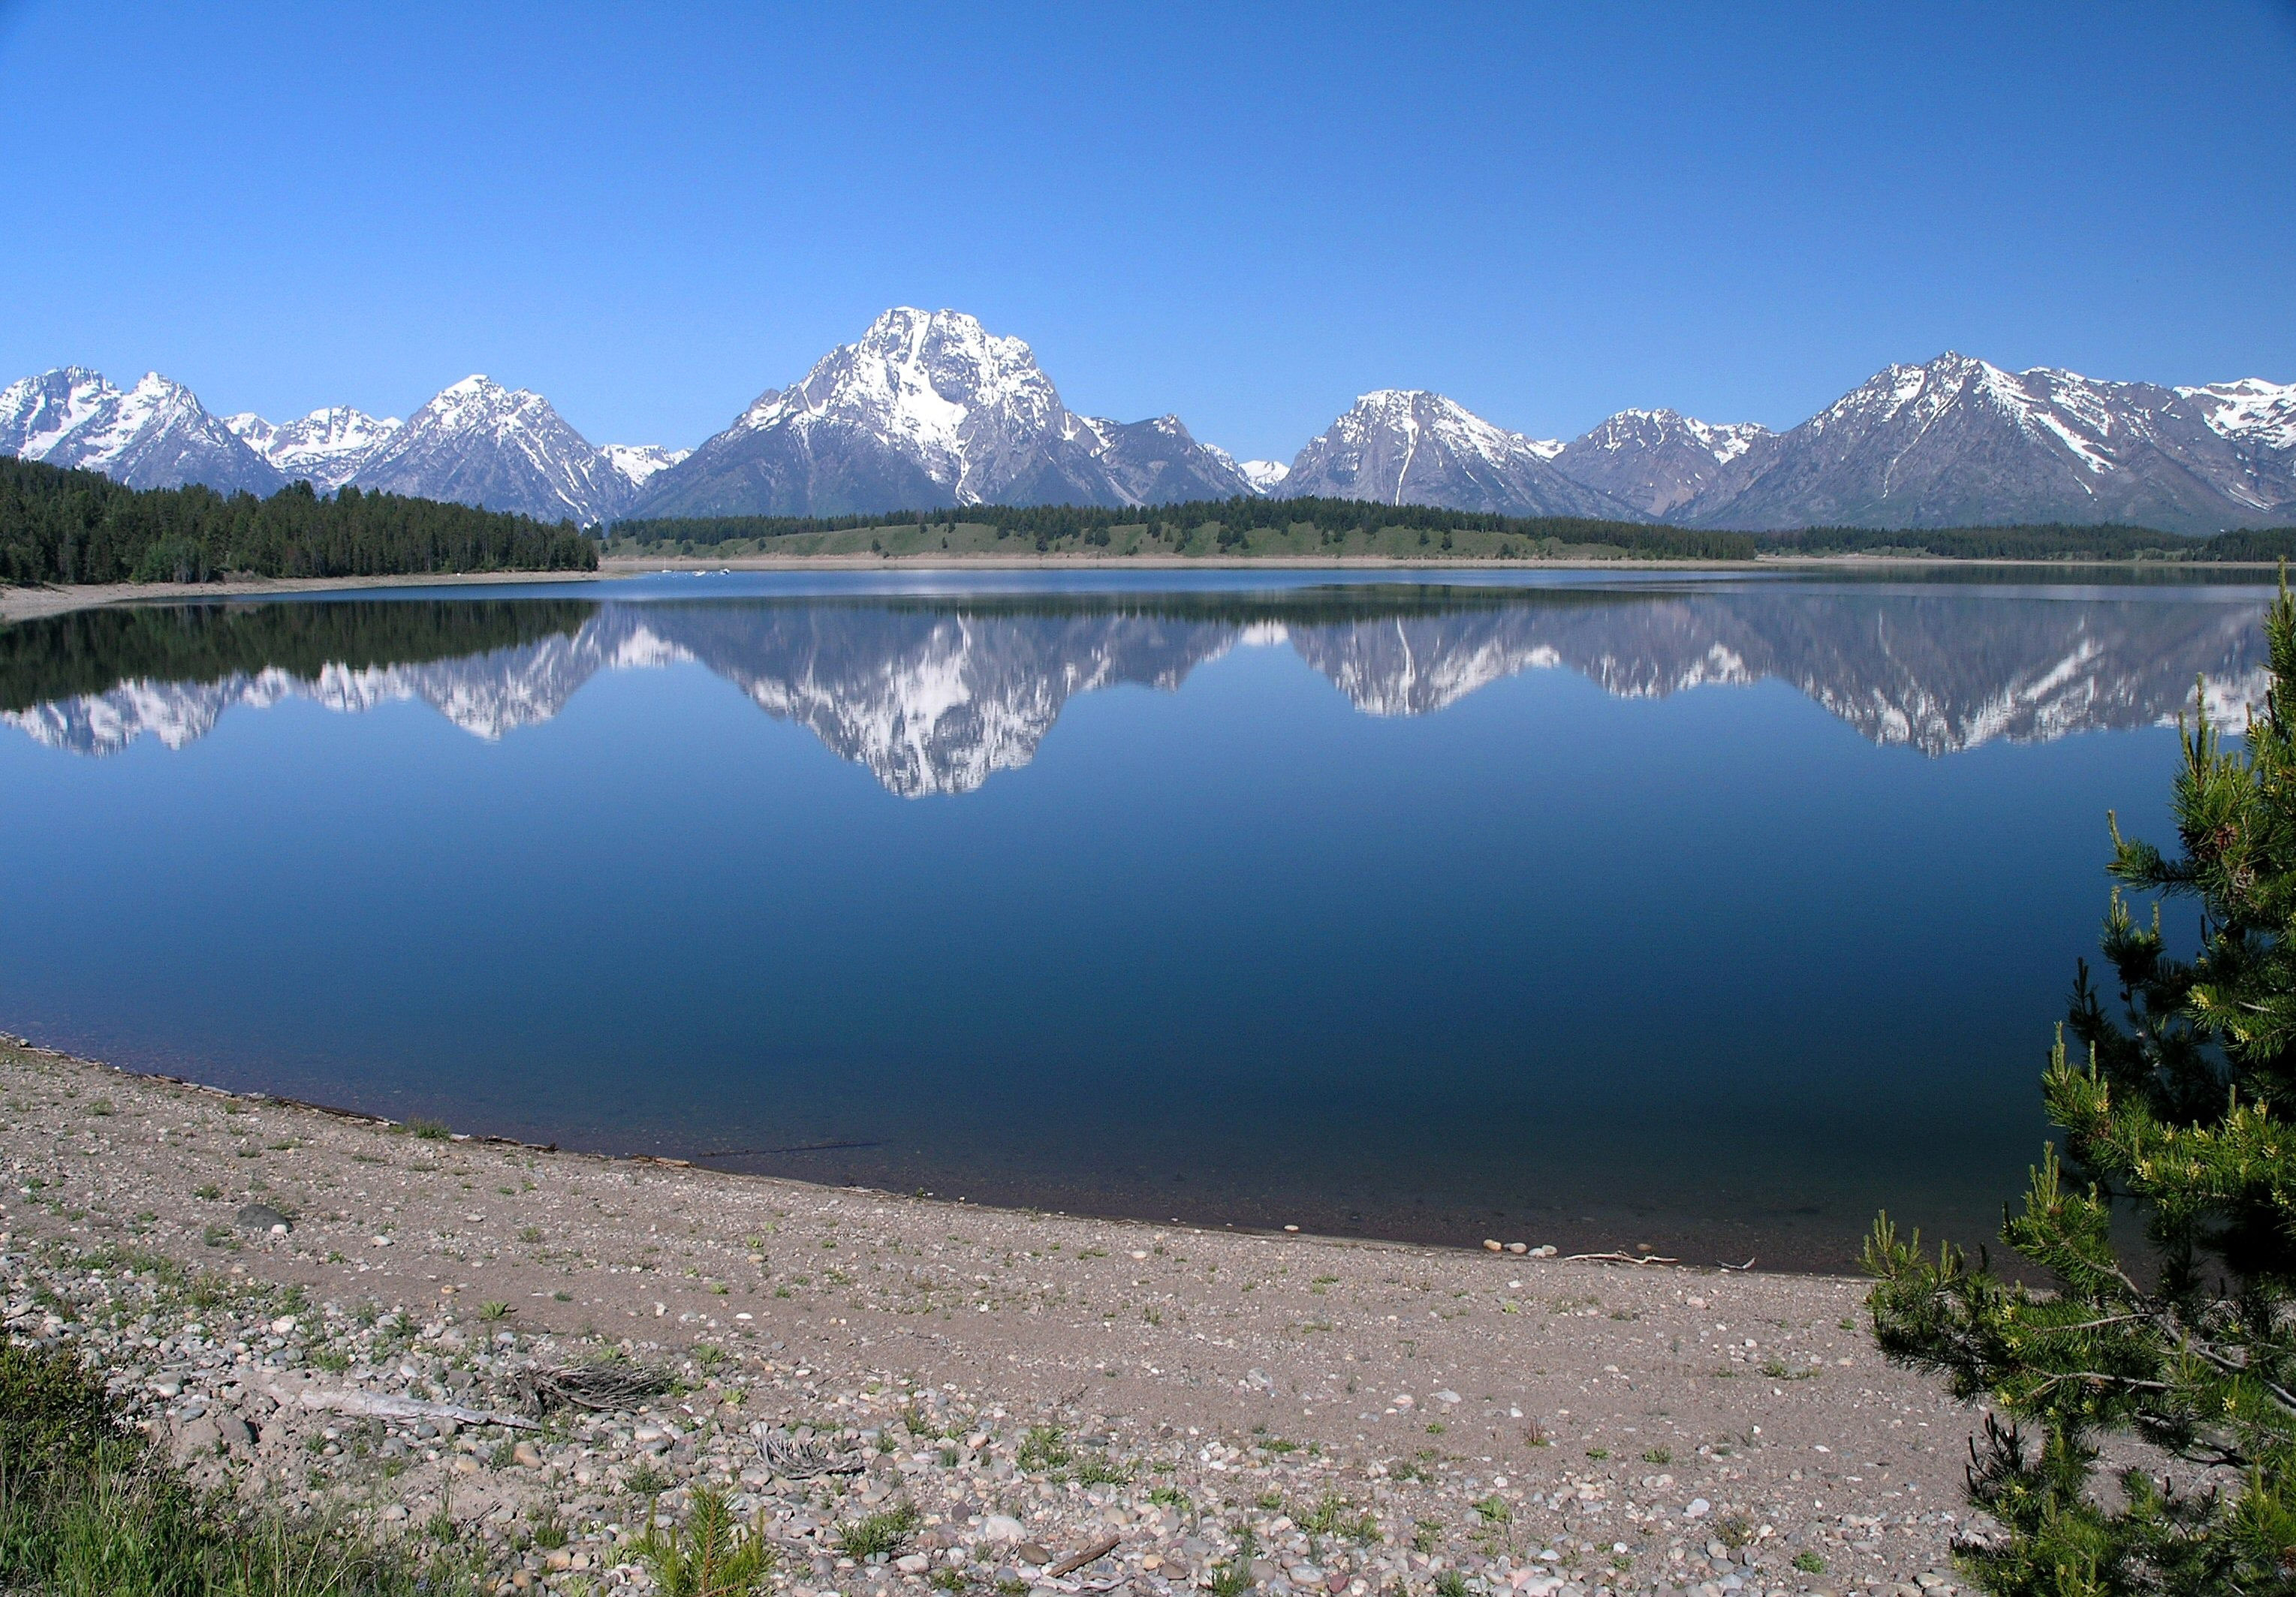 Jackson Lake Landscape In Grand Teton National Park